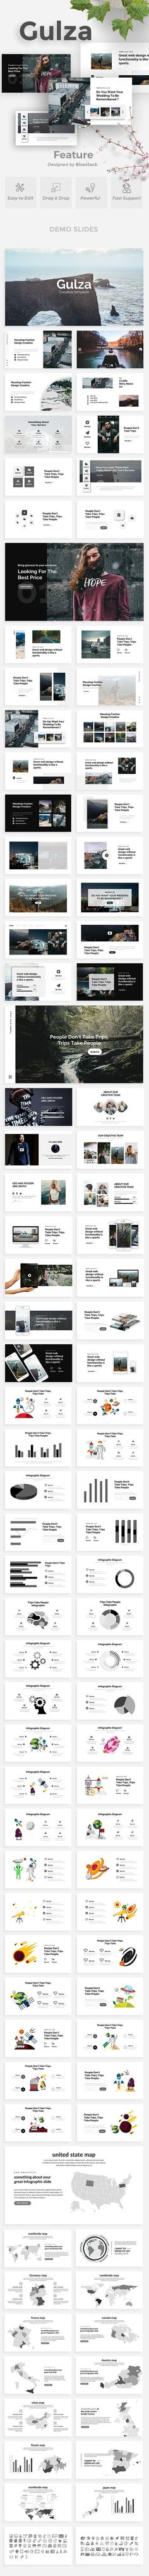 Buy Gulza Creative Powerpoint Template by bluestack on GraphicRiver. Features: Aspect Ratio no more broken images! Easy and fully editable in PowerPoint (shape color, size, position. Presentation Layout, Presentation Slides, Presentation Templates, Graphisches Design, Graphic Design, Slide Template, Broken Images, Creative Powerpoint Templates, Creative Visualization